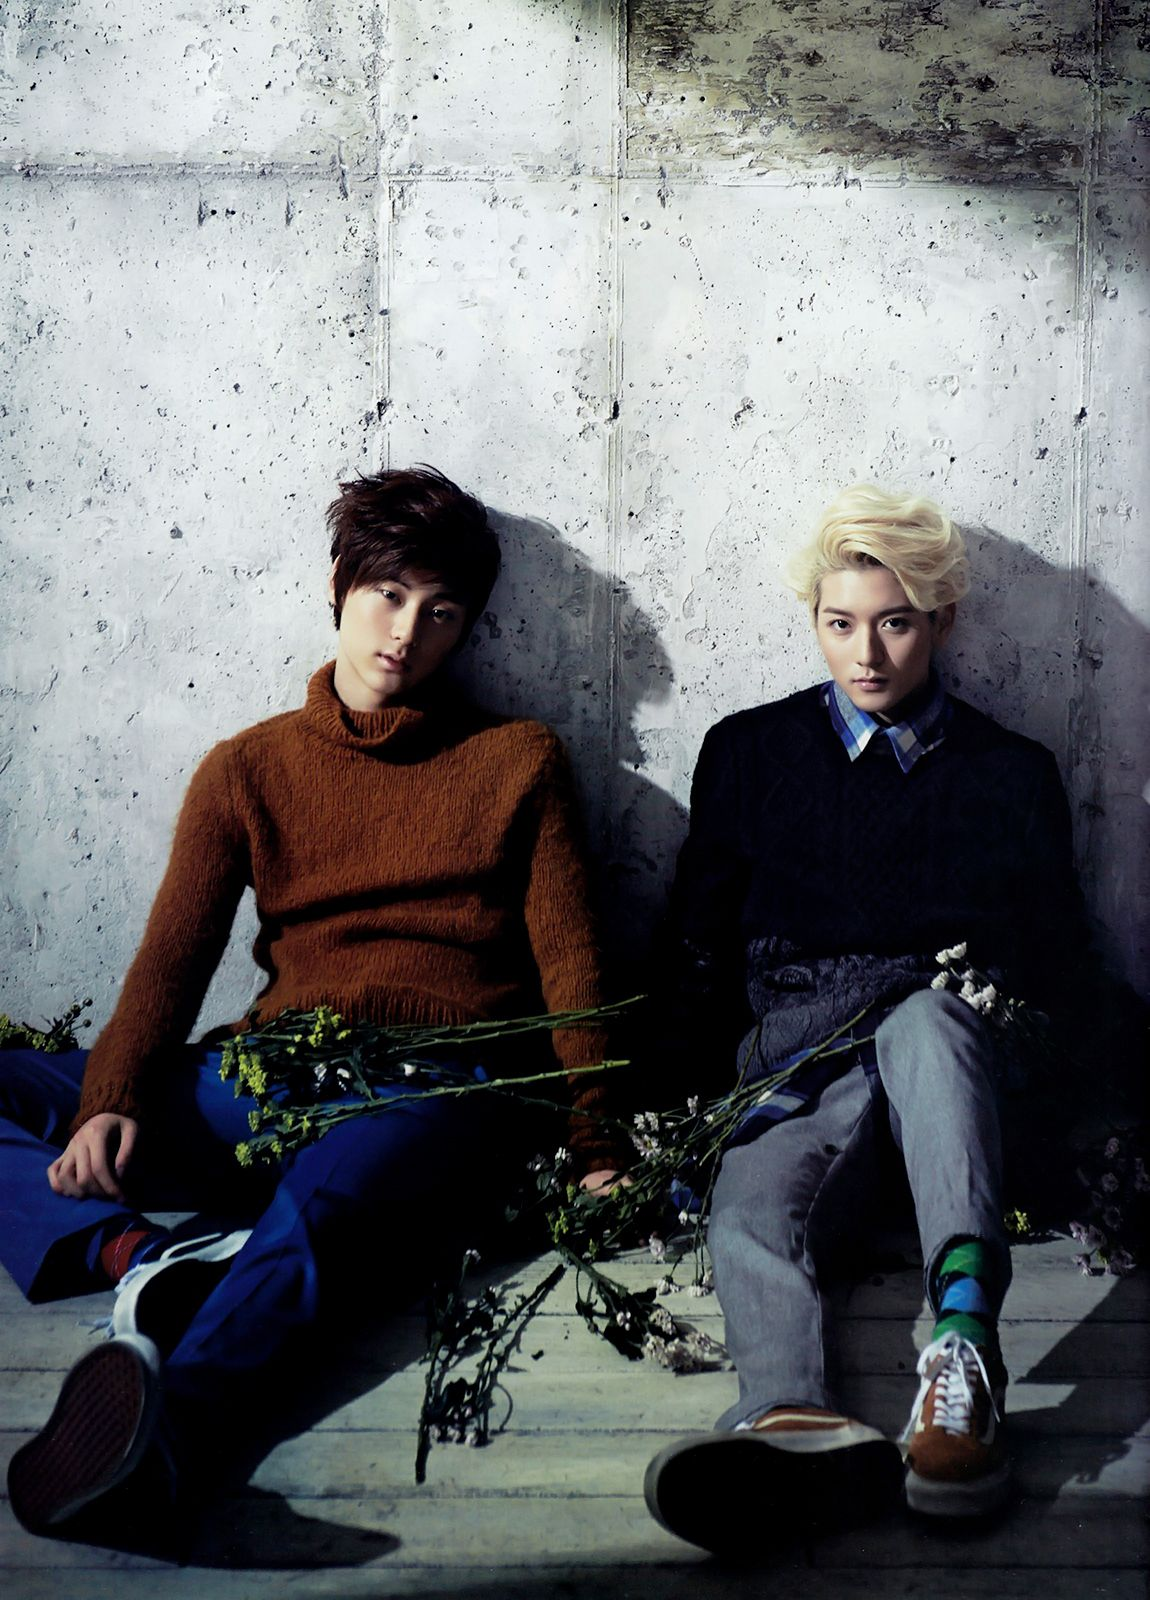 Minhyun and Ren - Ceci Magazine October Issue '13